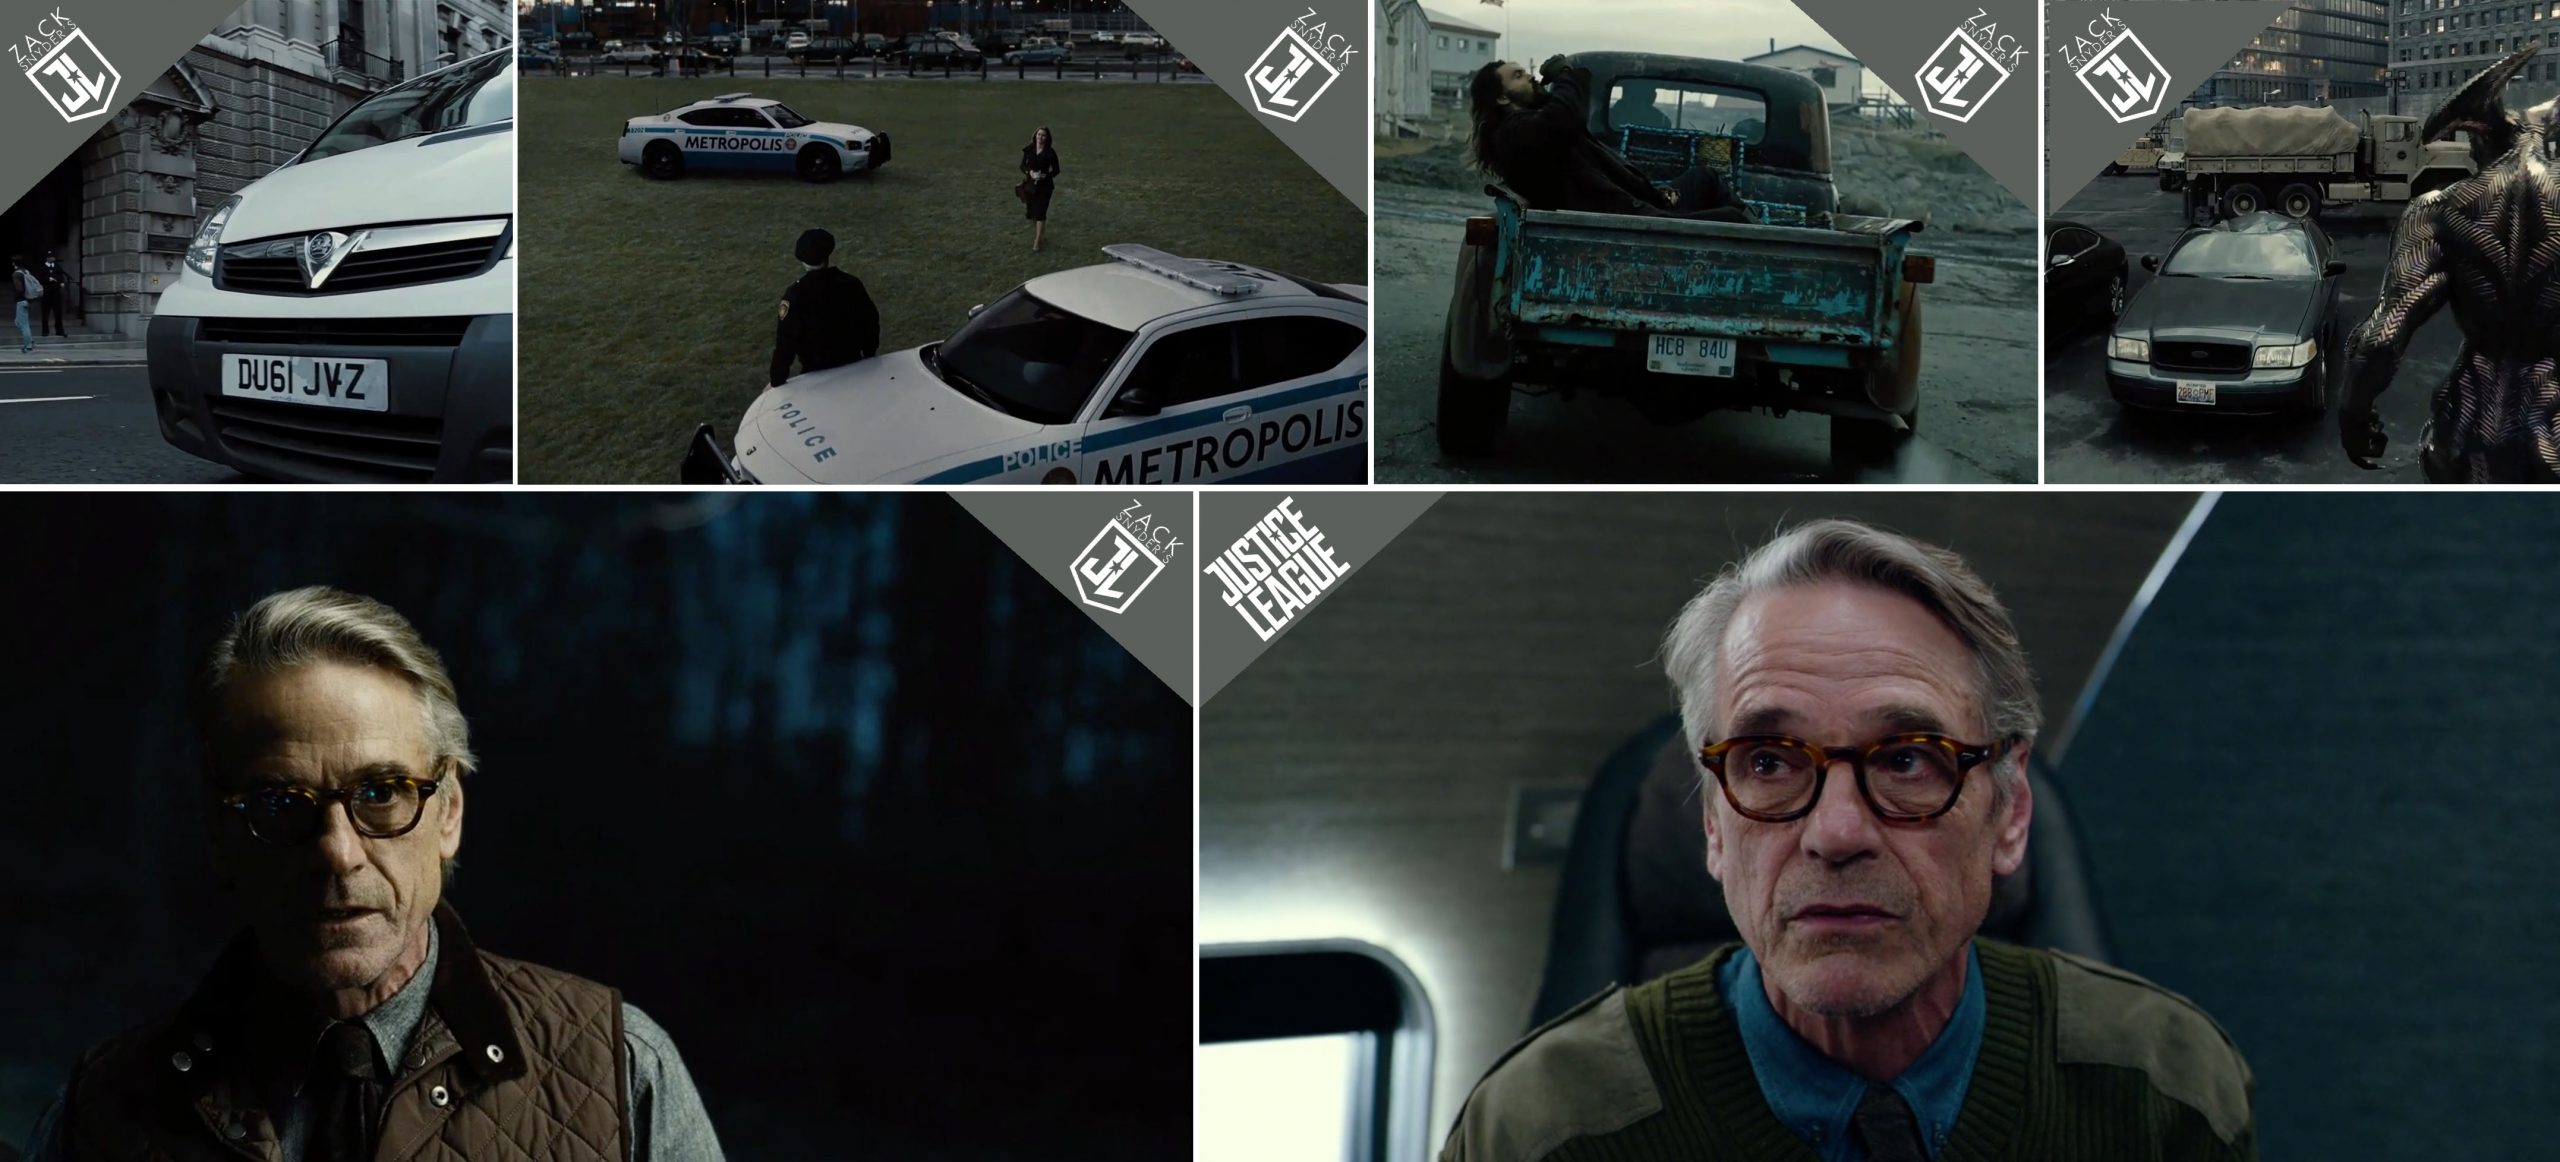 Vauxhall, Dodge, Chevrolet, Ford and Moscot product placements in Zack Snyder's Justice League